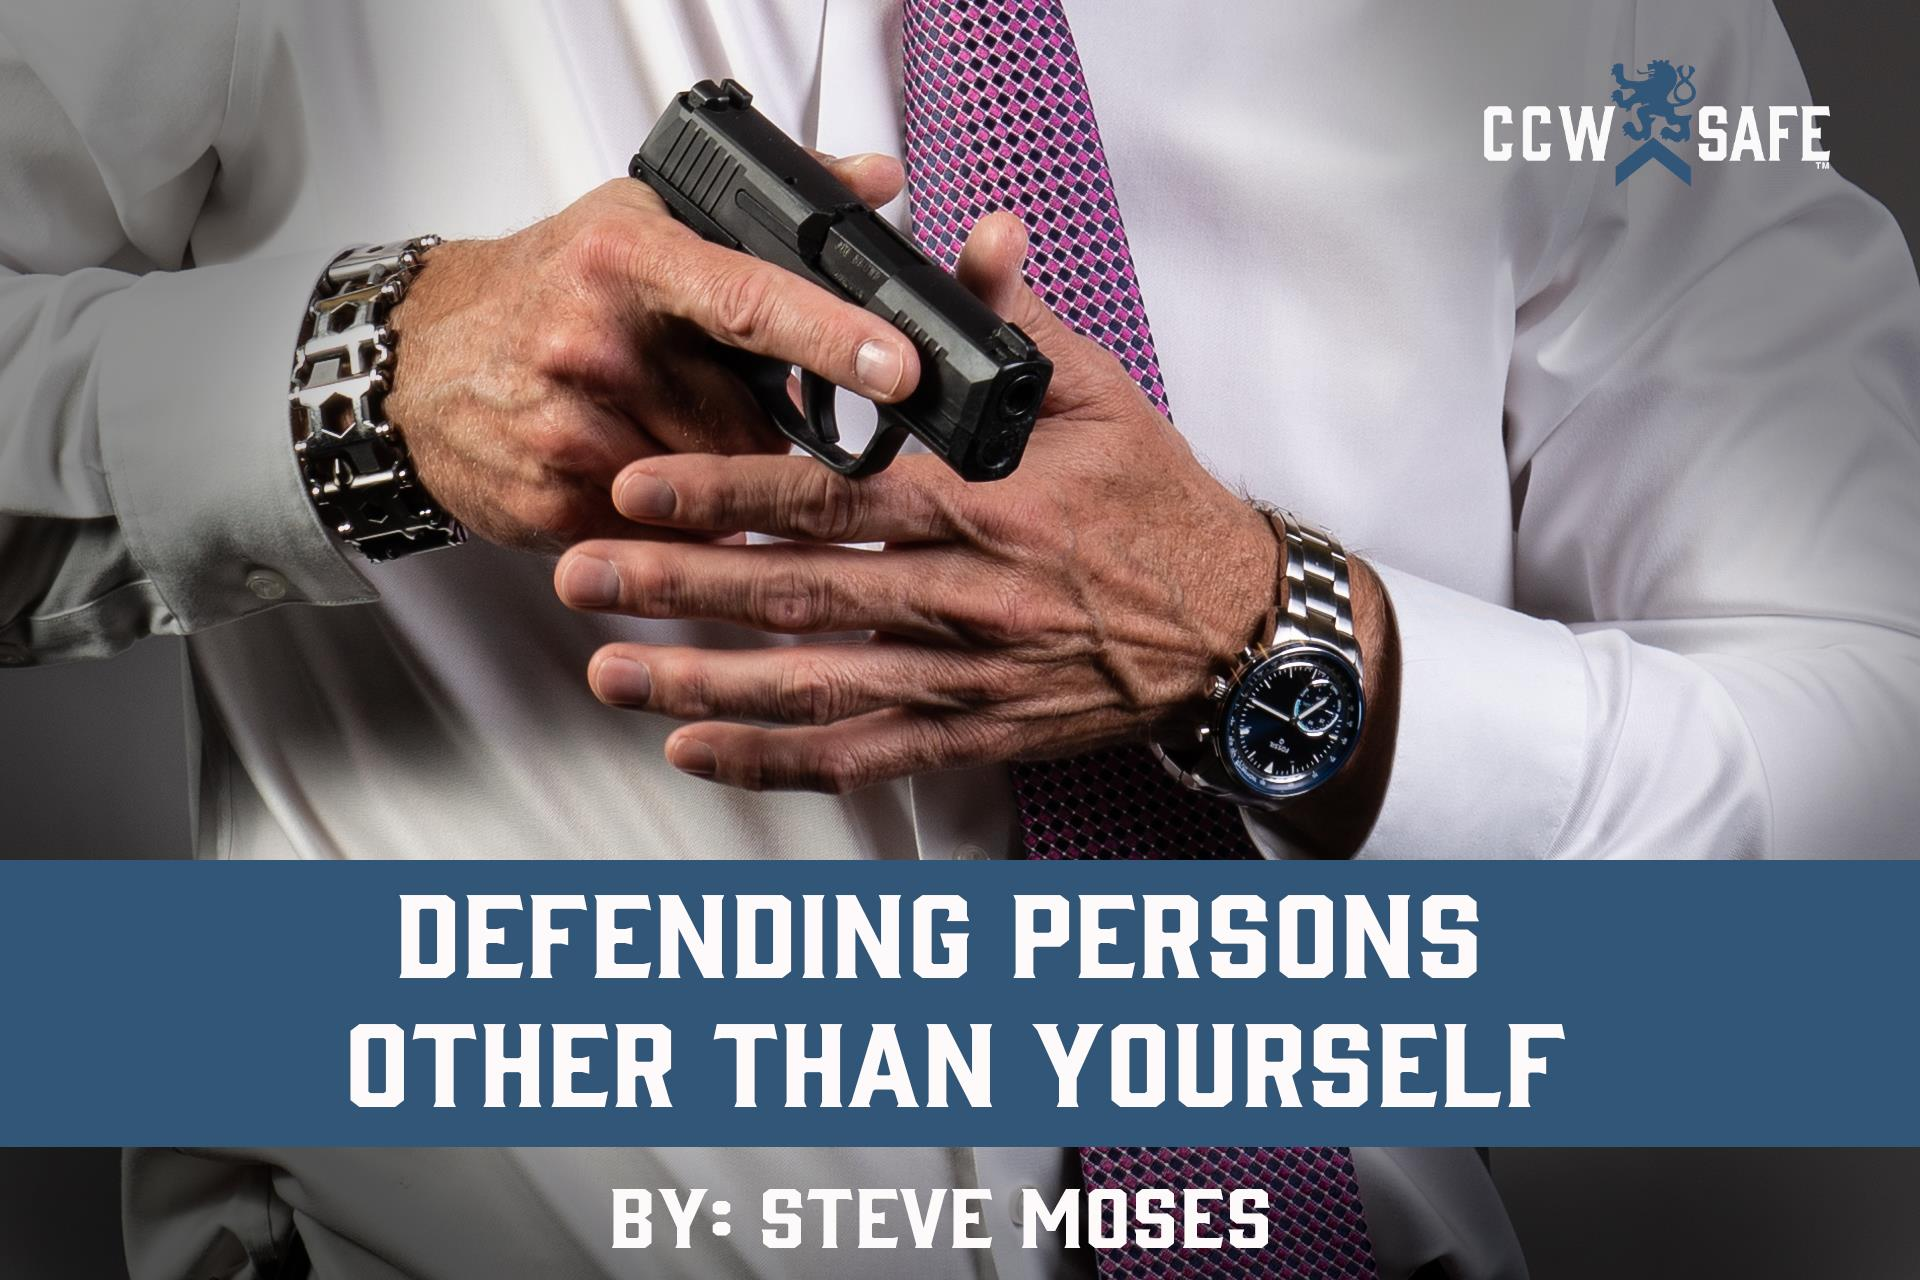 DEFENDING PERSONS OTHER THAN YOURSELF